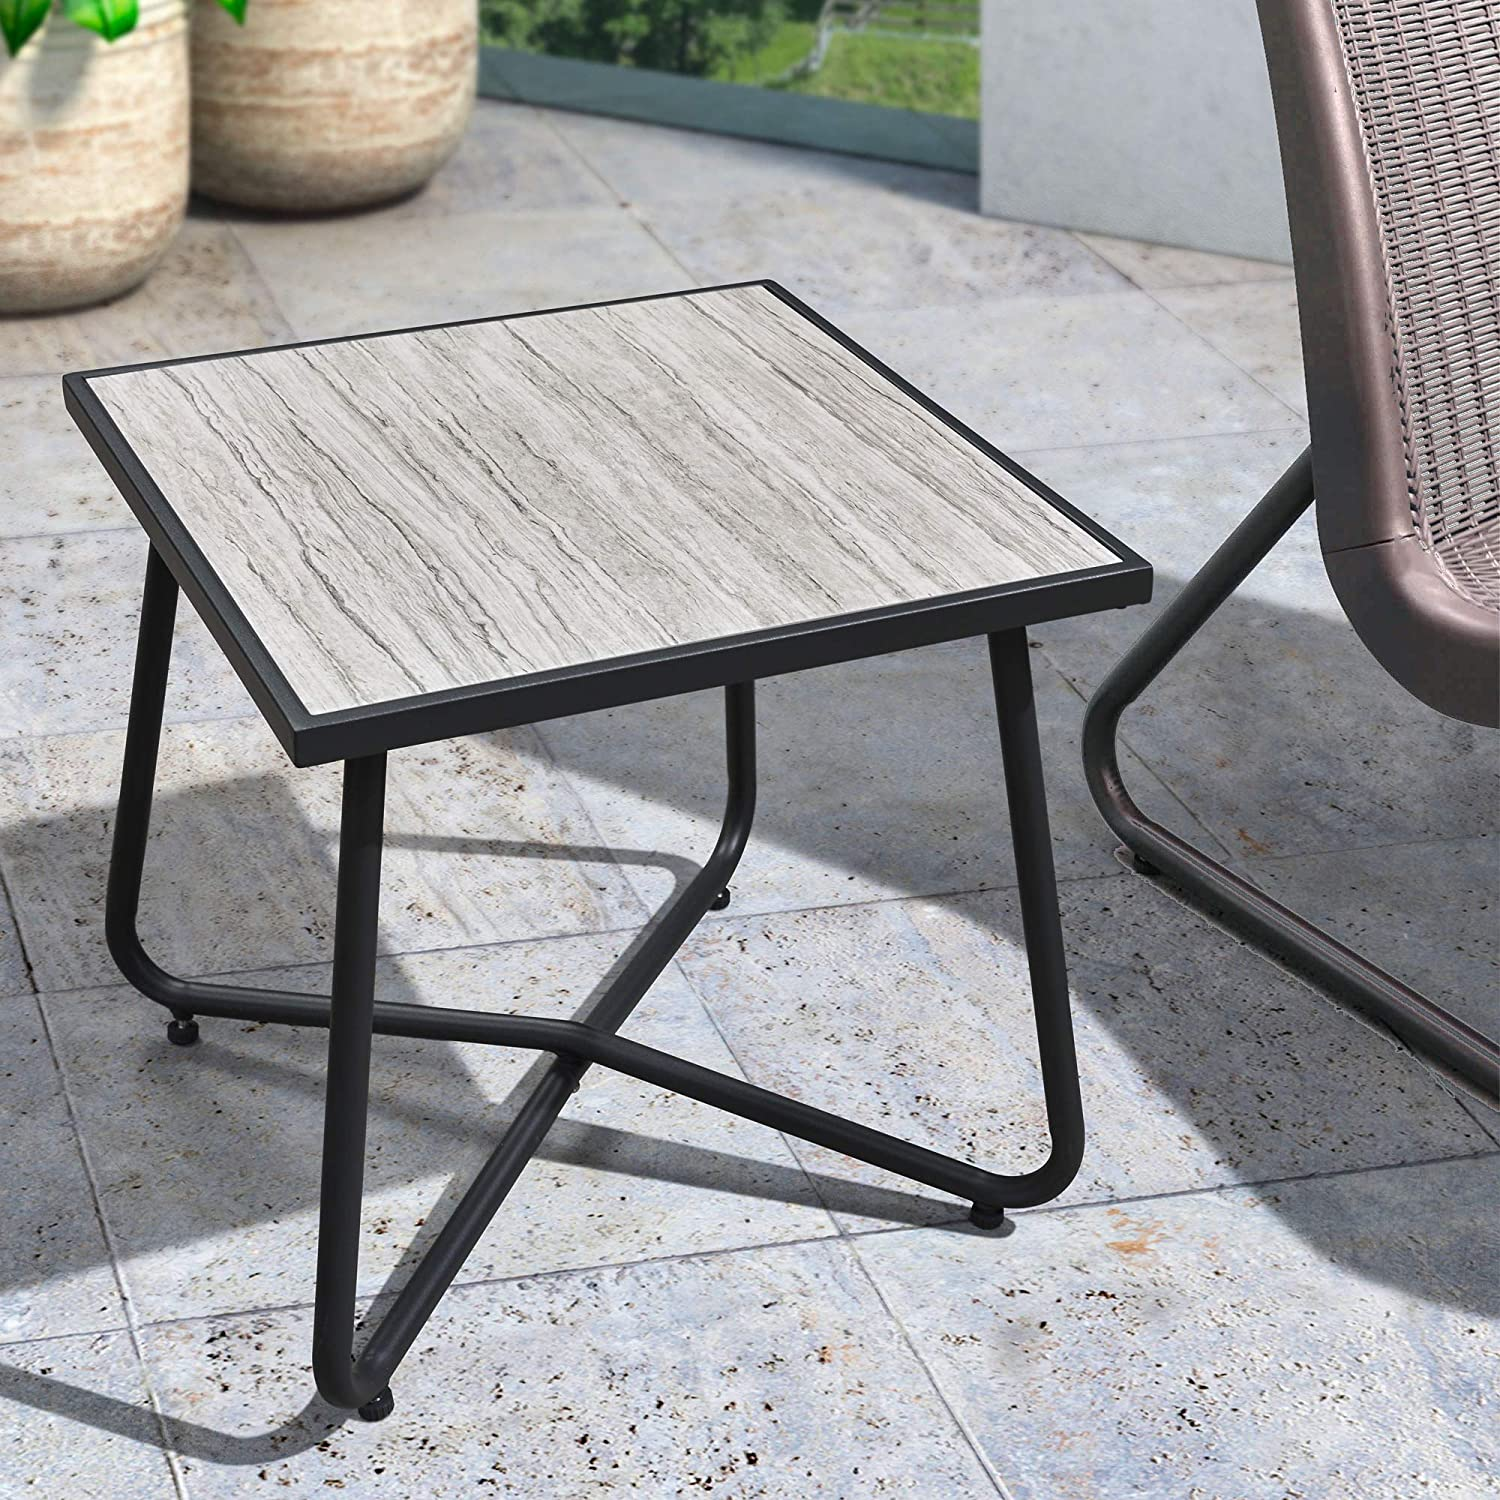 Cushions Included PURPLE LEAF 3 Pieces Patio Bistro Set with Weather Resistant Steel Frame and Square Table Conversation Set Coffee